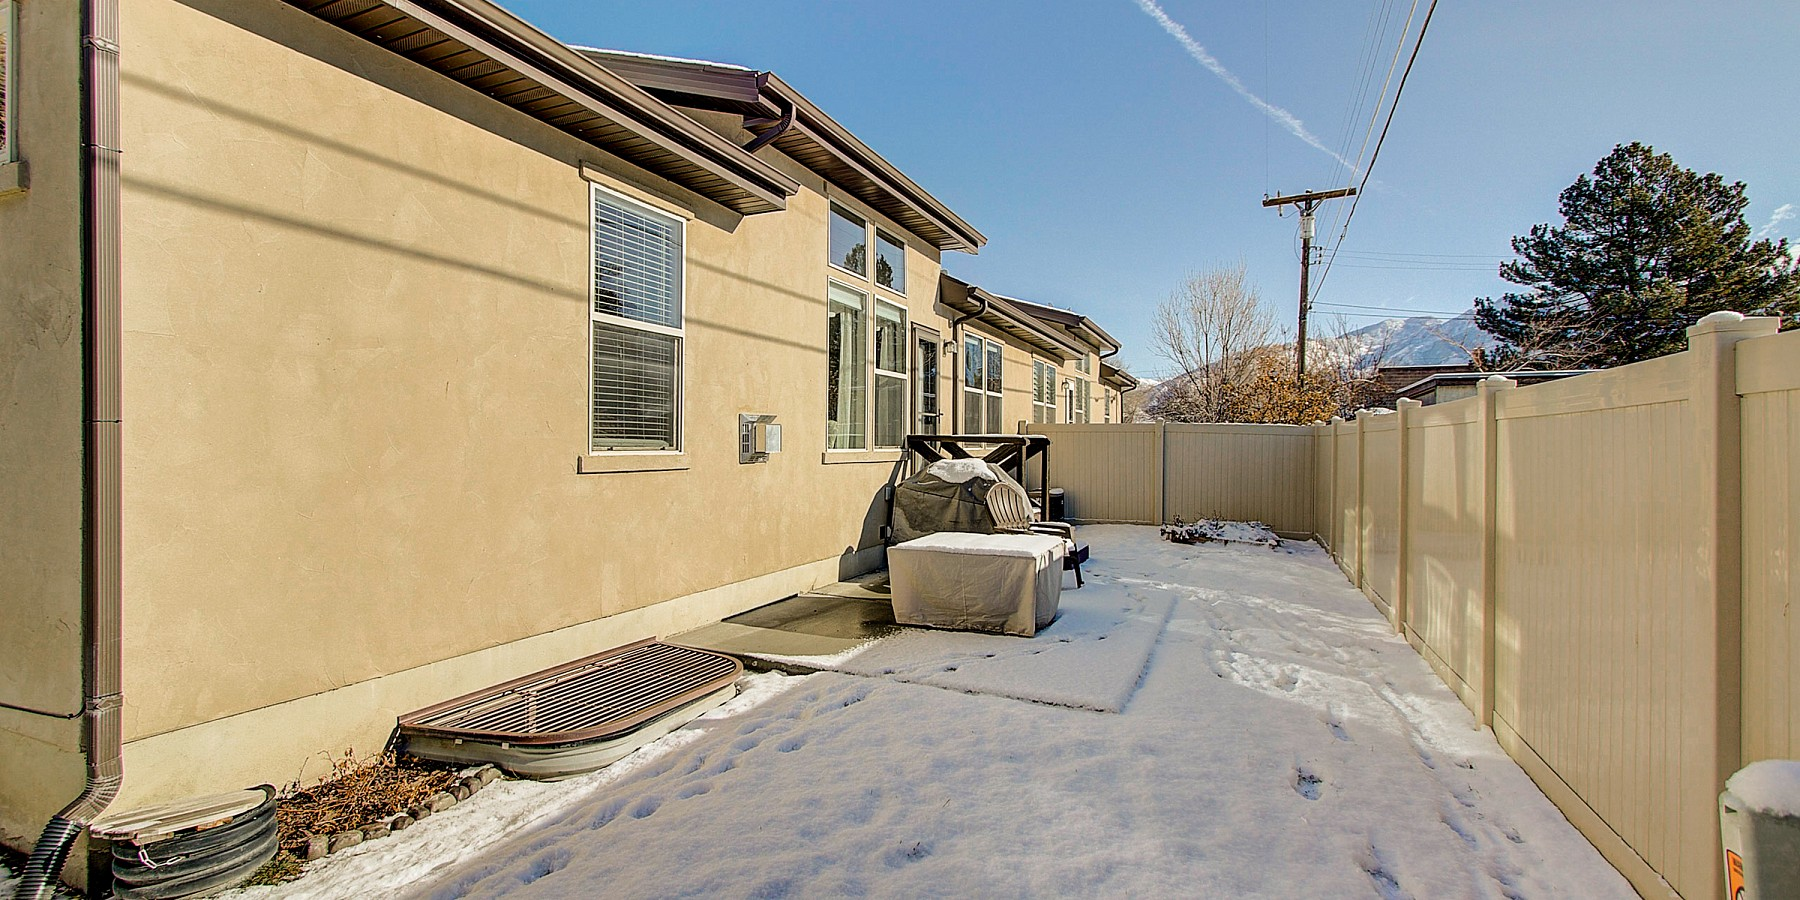 832 E. Olivia View Lane, Salt Lake City, UT 84107